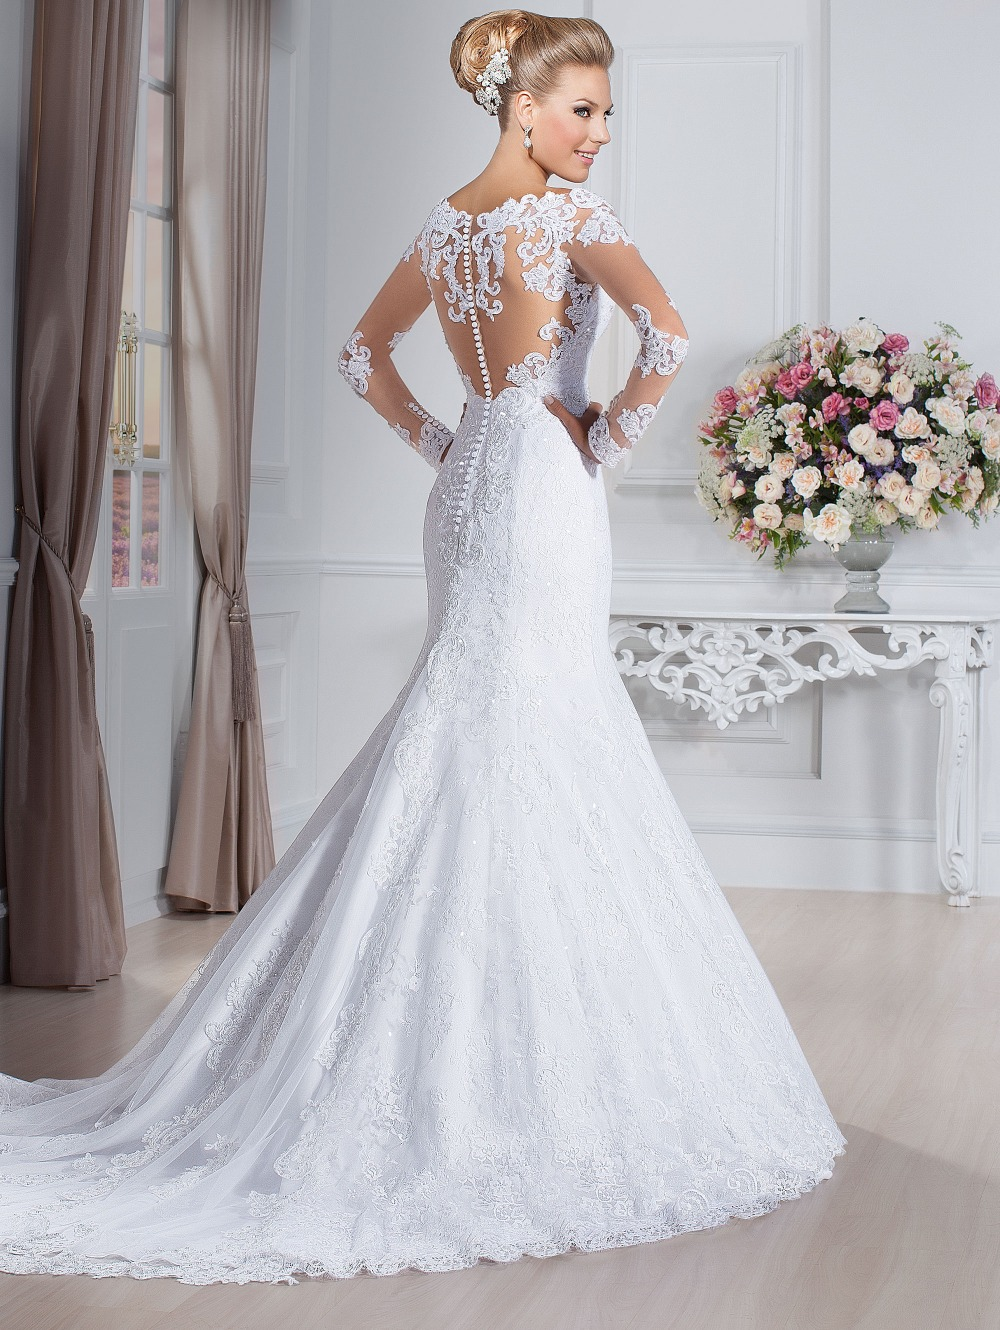 2015 wedding dresses in china wedding dresses dressesss for Wedding dresses in china